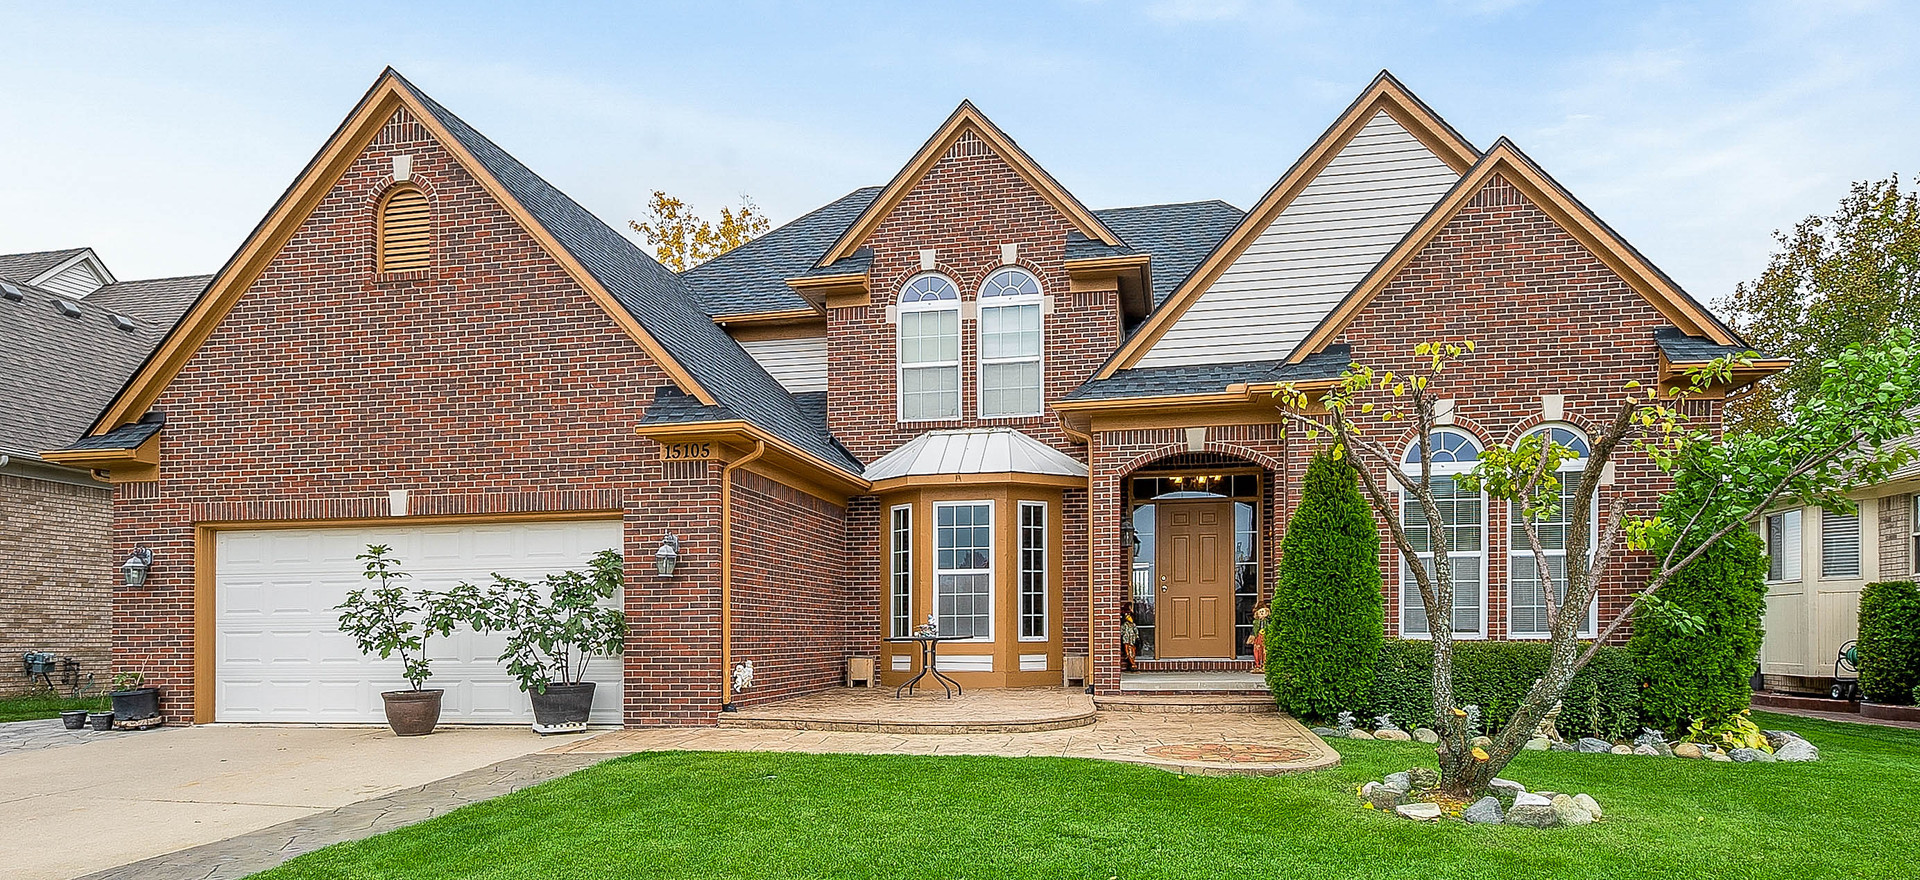 15105-rivercrest-drive-sterling-heights-